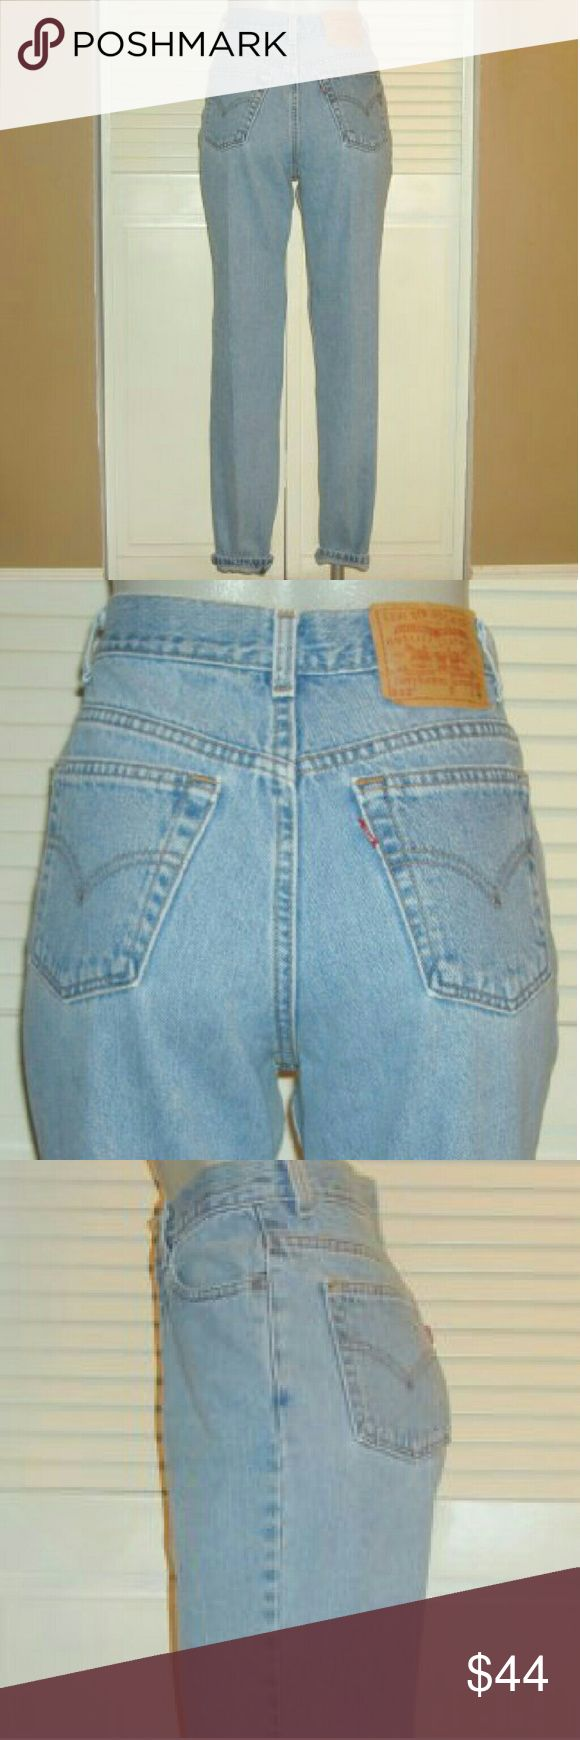 """Vntg Levis 512 High Waist Slim Fit Tapered Jeans This pair of Vintage Levi's 512 jeans are 27"""" around the waist, 37"""" around the hips, have an 11"""" rise and a 30 1/2"""" inseam. Levi's Jeans Straight Leg"""